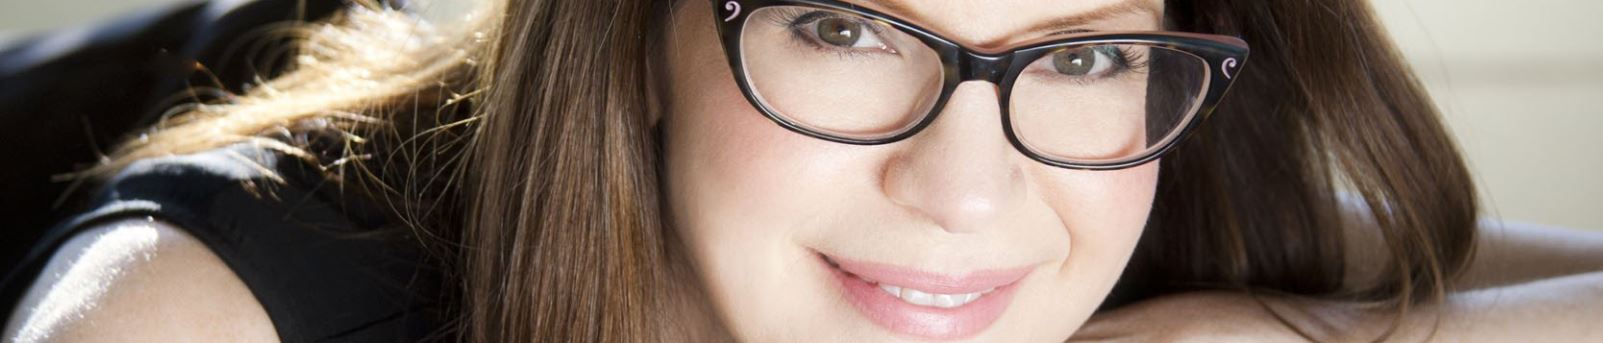 By Brand - Alphabetically - K, L, M - Lisa Loeb - Daniel Walters Eyewear